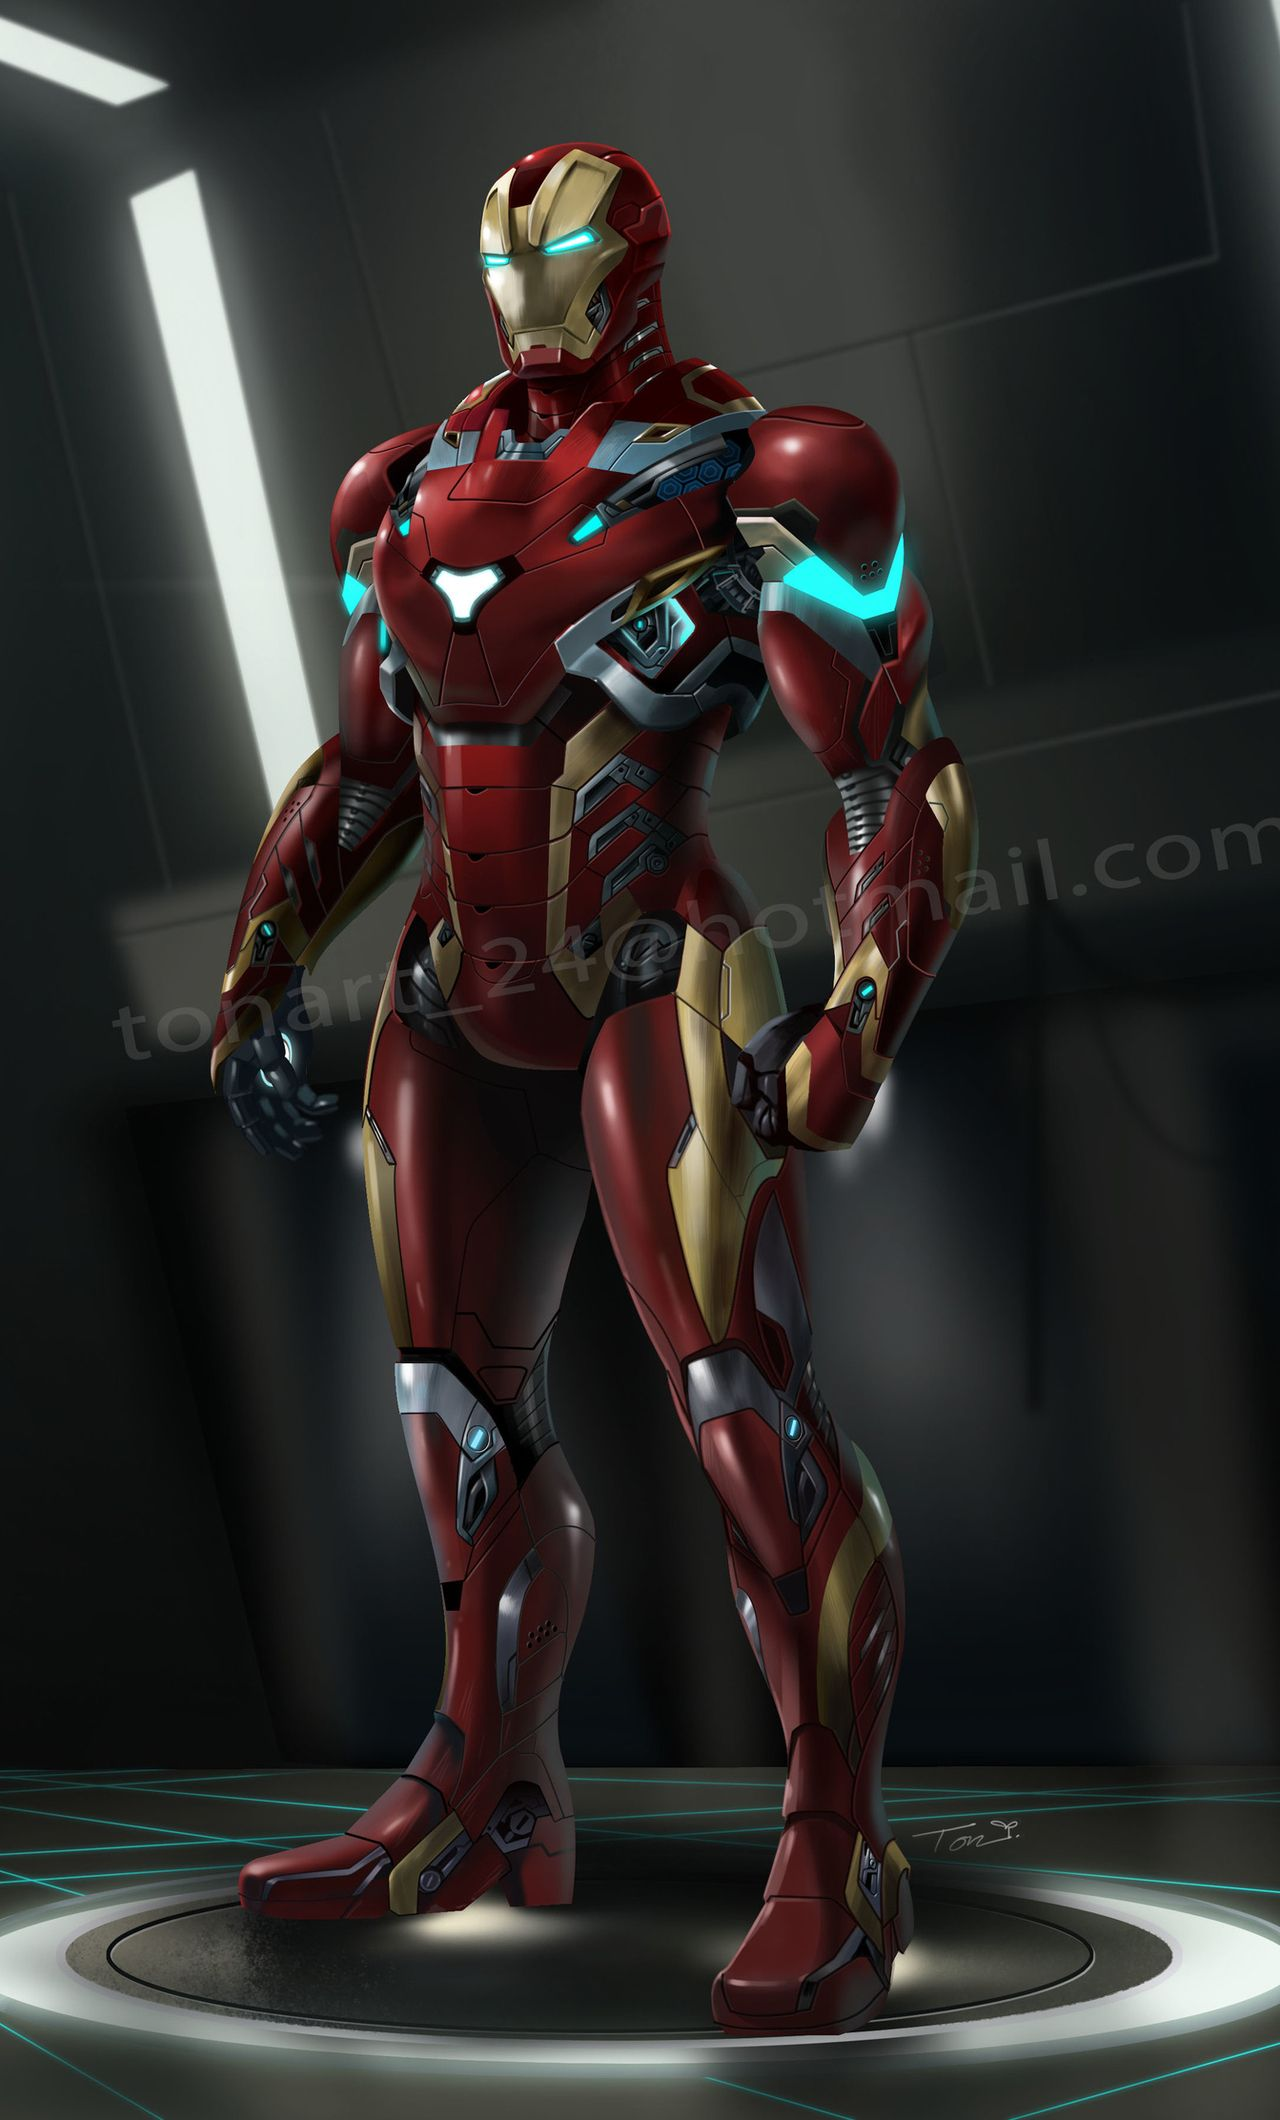 1280x2120 Iron Man Suit Artwork iPhone 6+ HD 4k Wallpapers, Image